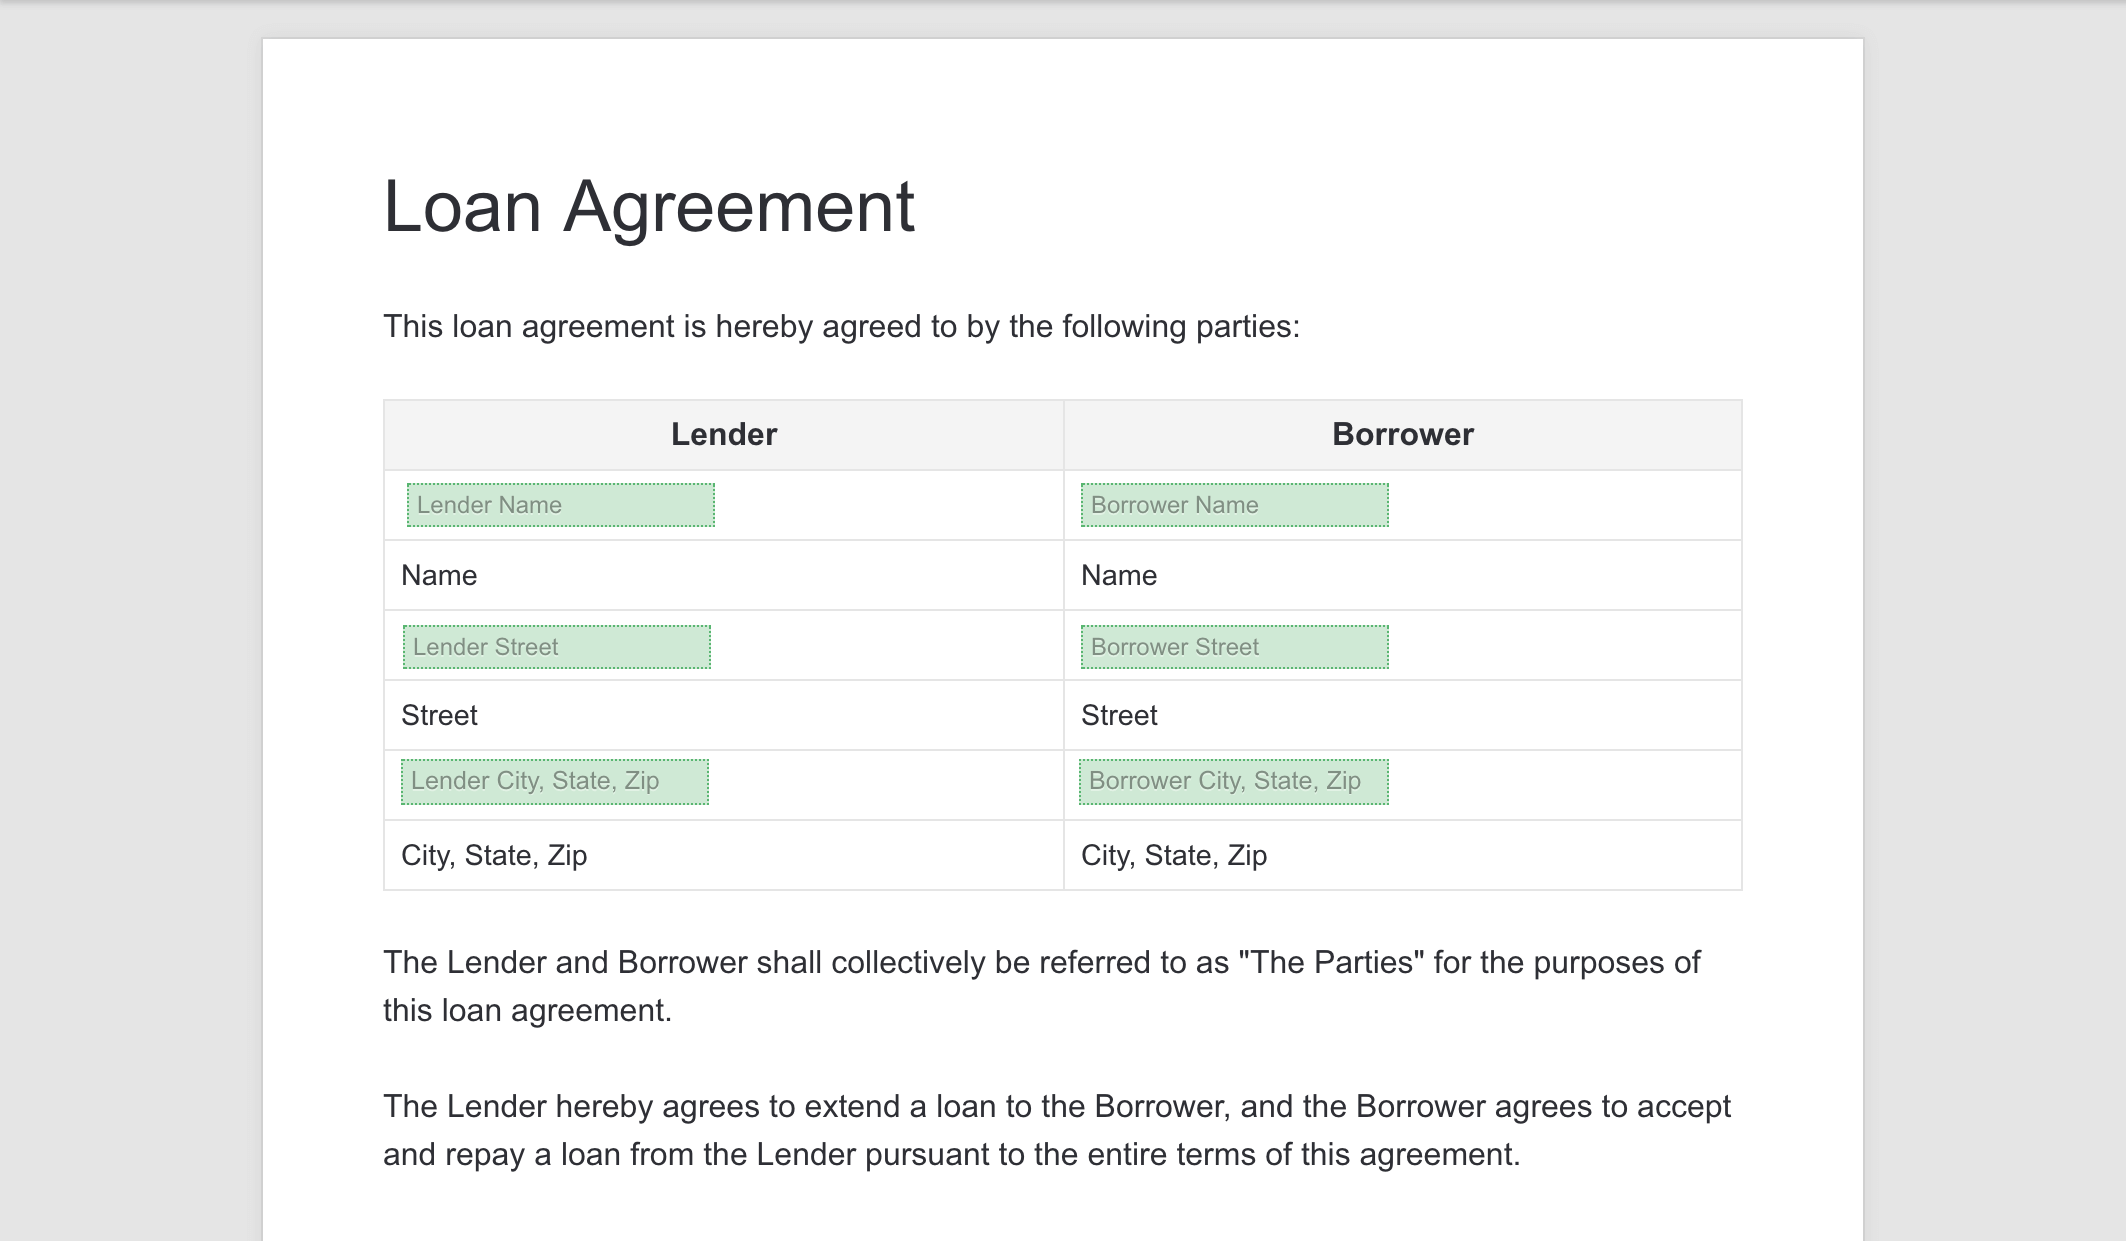 Even if the loan is given to a friend or a family member,. How To Fill Out And Sign A Loan Agreement Online Via Pandadoc